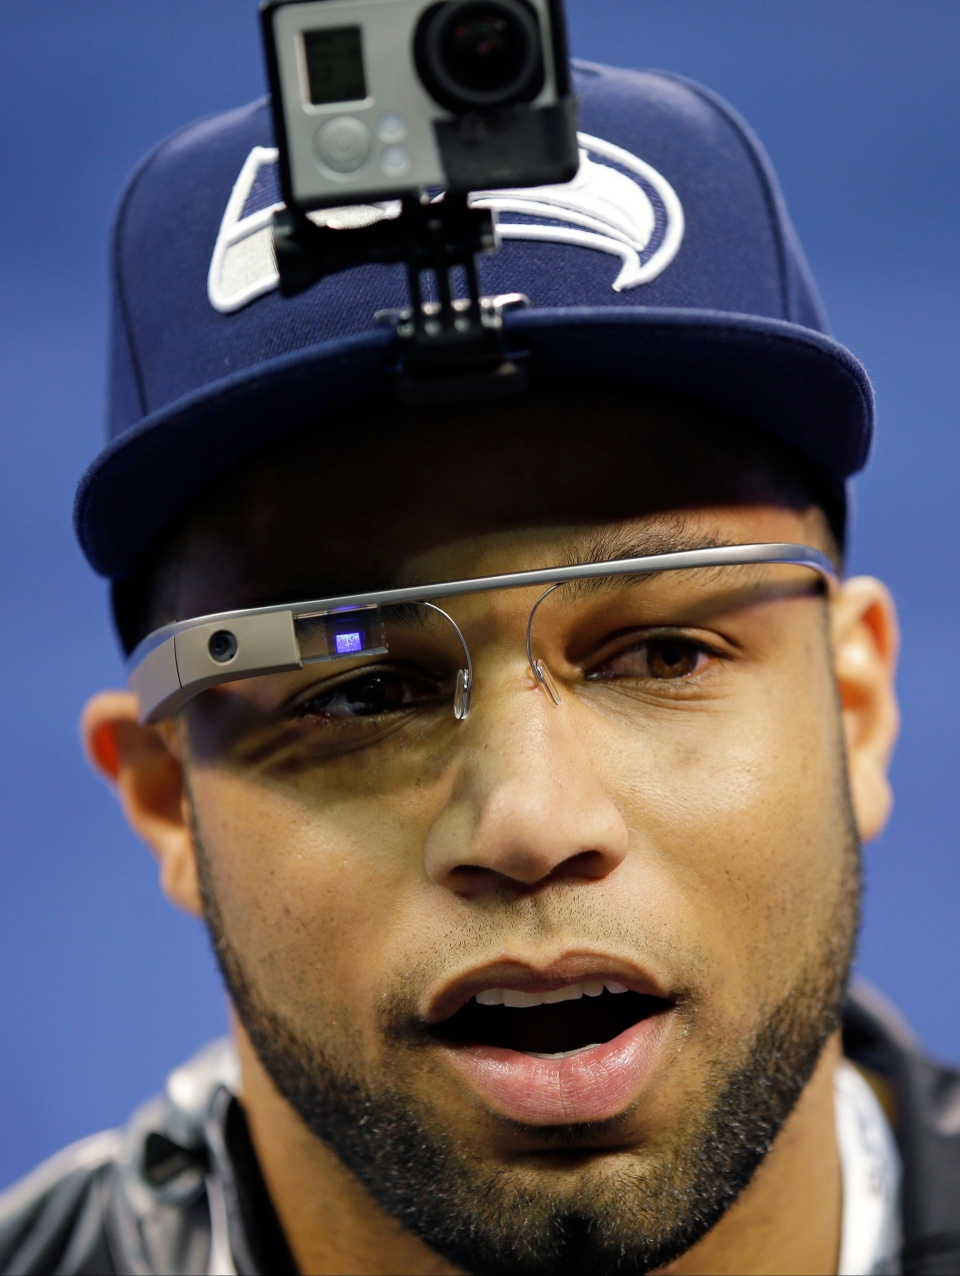 Seattle Seahawks' Golden Tate wears Google glasses during media day for the NFL Super Bowl XLVIII football game Tuesday, Jan. 28, 2014, in Newark, N.J. (AP Photo/Matt Slocum)